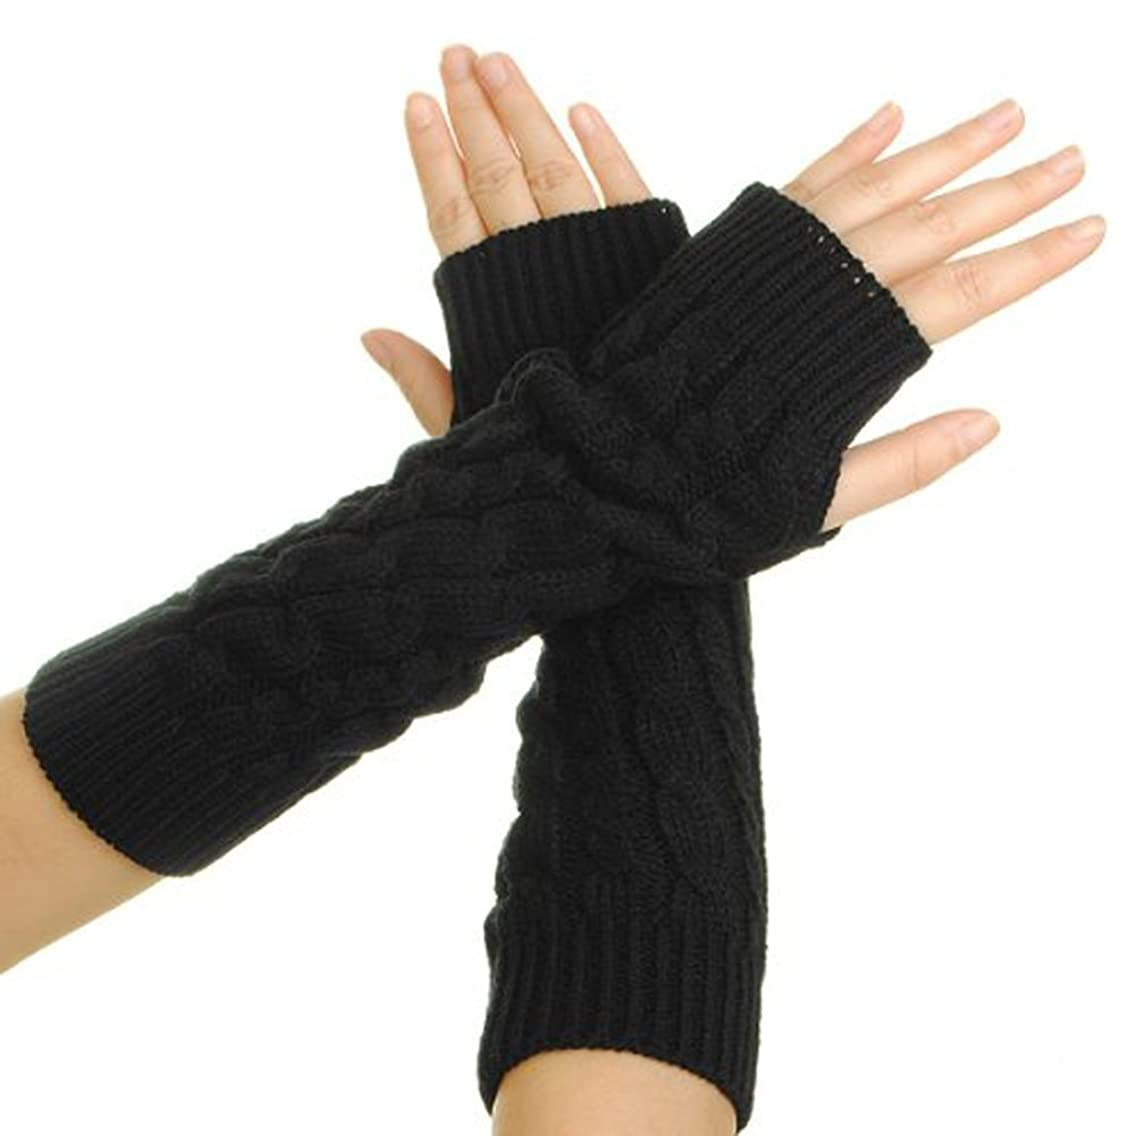 Unisex Half Finger Stretchy Fingerless Gloves One Size Fits Most (Many Color/Styles Available)